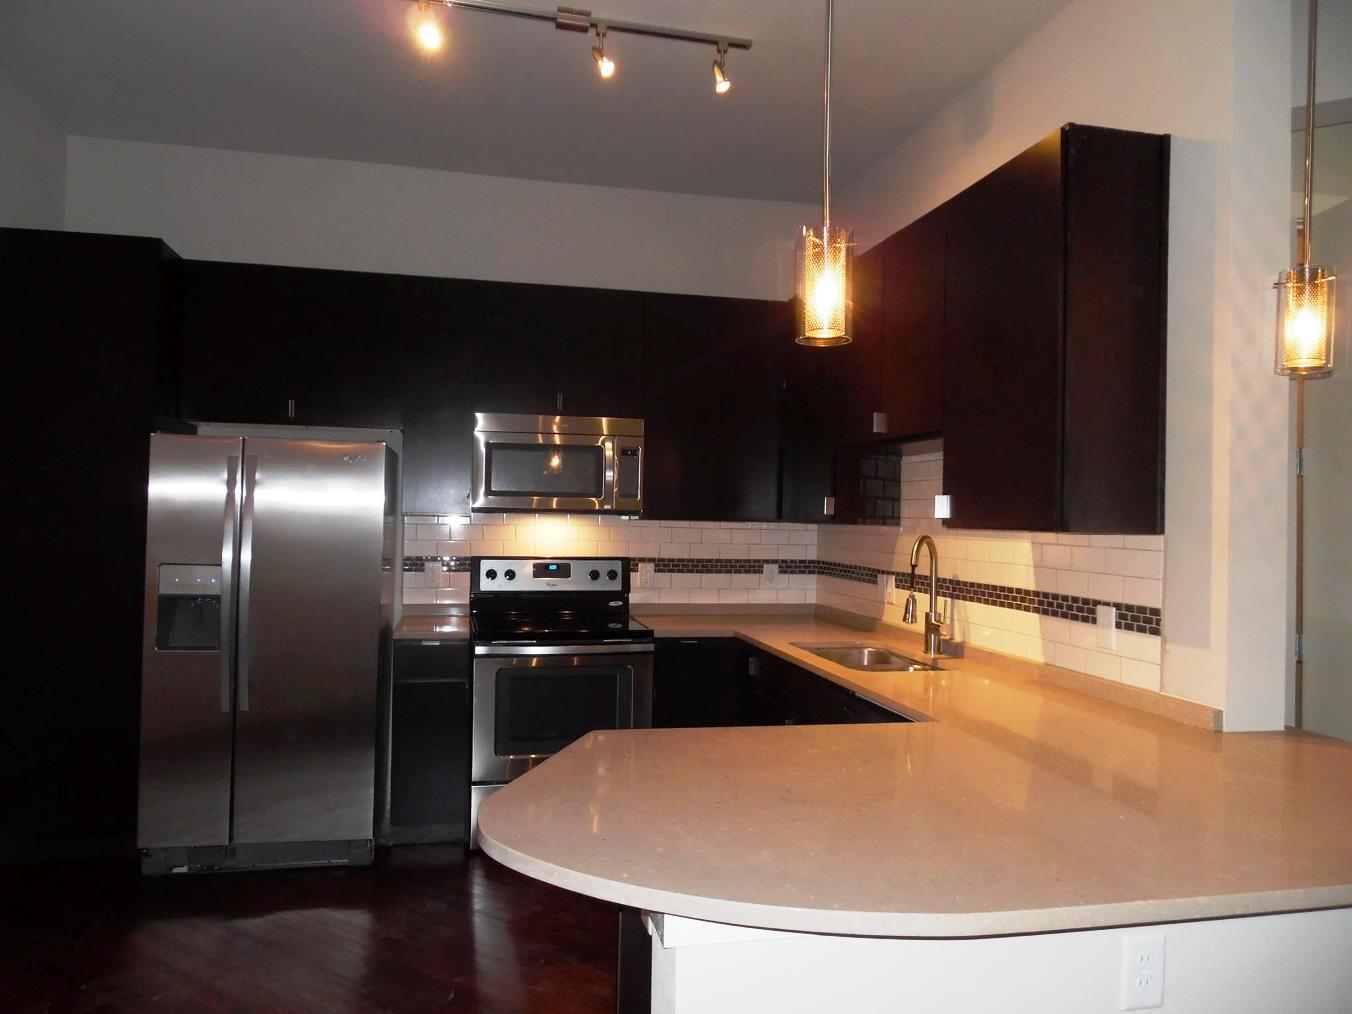 luxury apartment interior with stainless steel appliances - San Antonio TX - Apartments Today Inc.